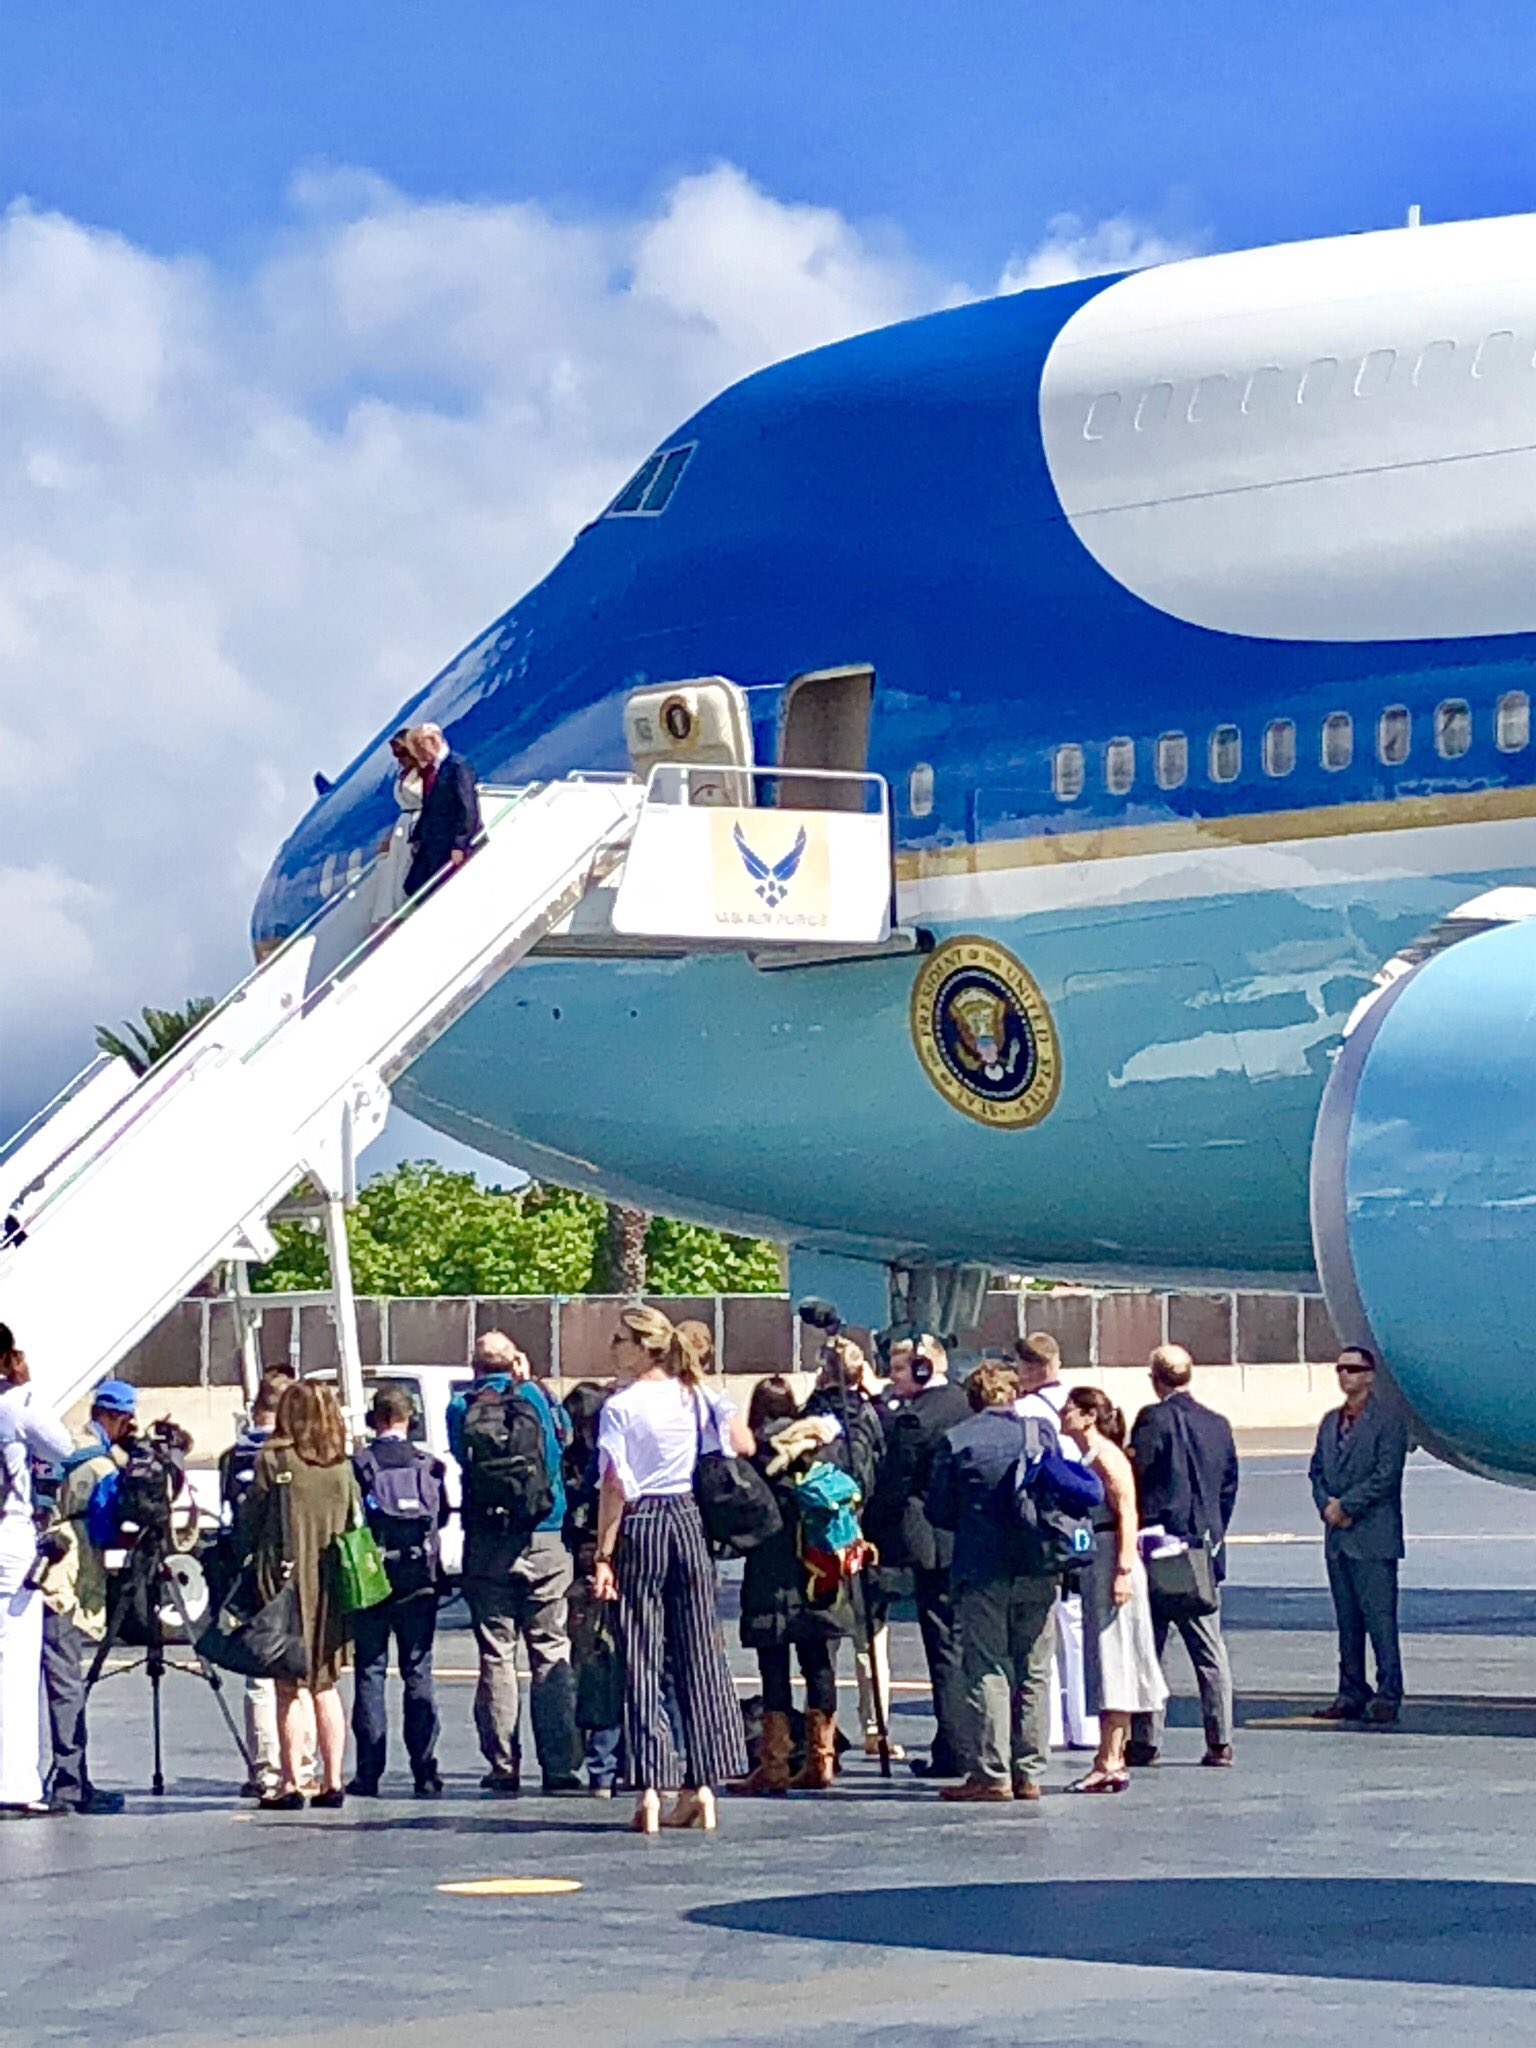 Wheels down in Hawaii! https://t.co/jhN7cqtX6y